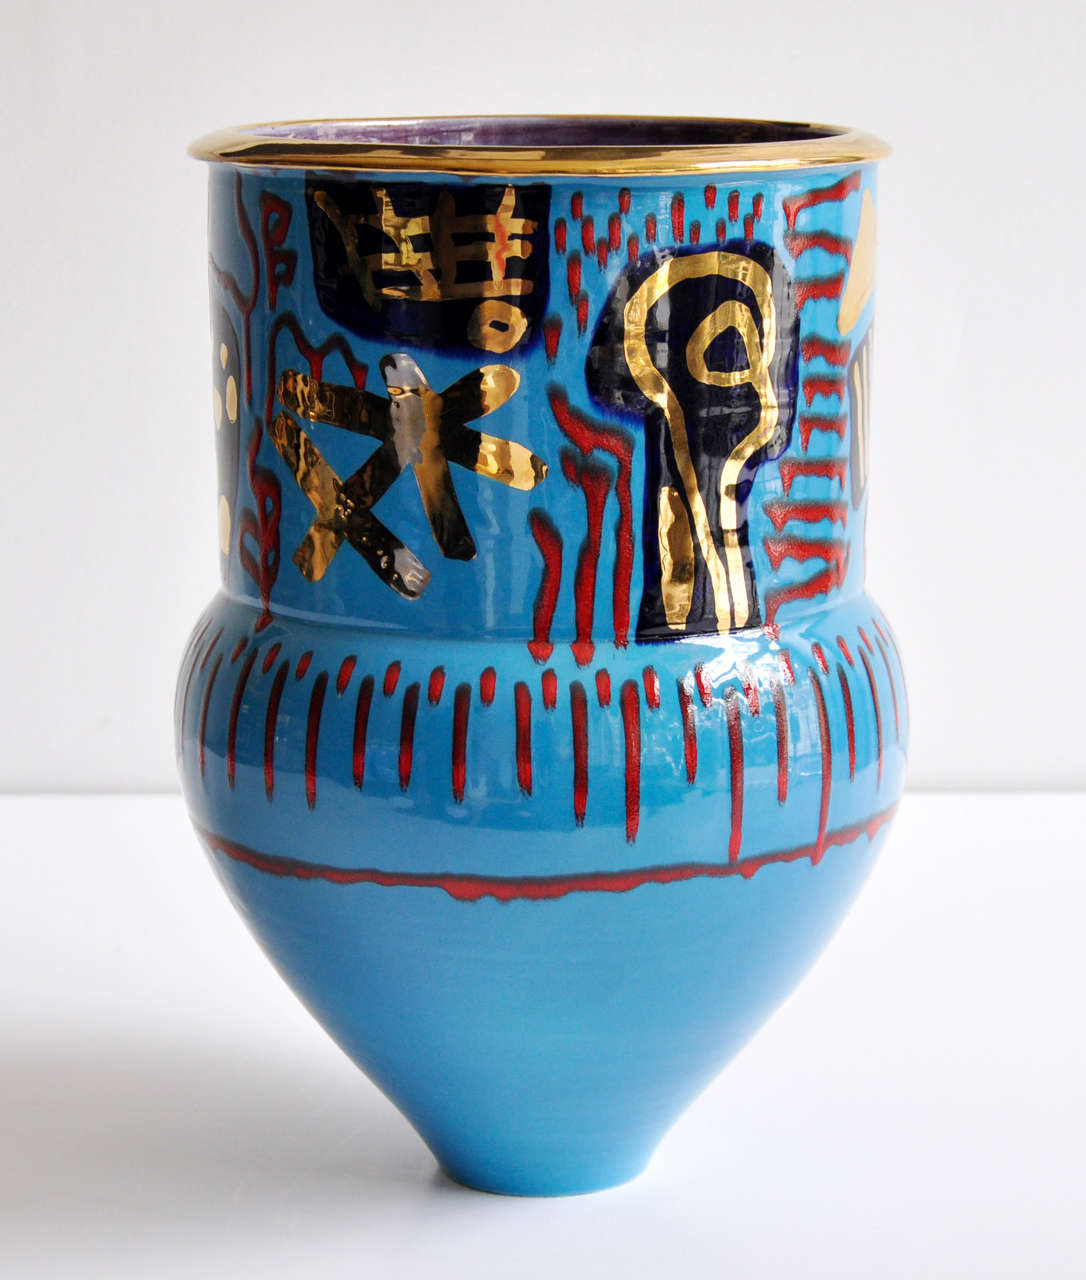 1980s Monumental Ceramic Vessel by Anna Silver For Sale 1